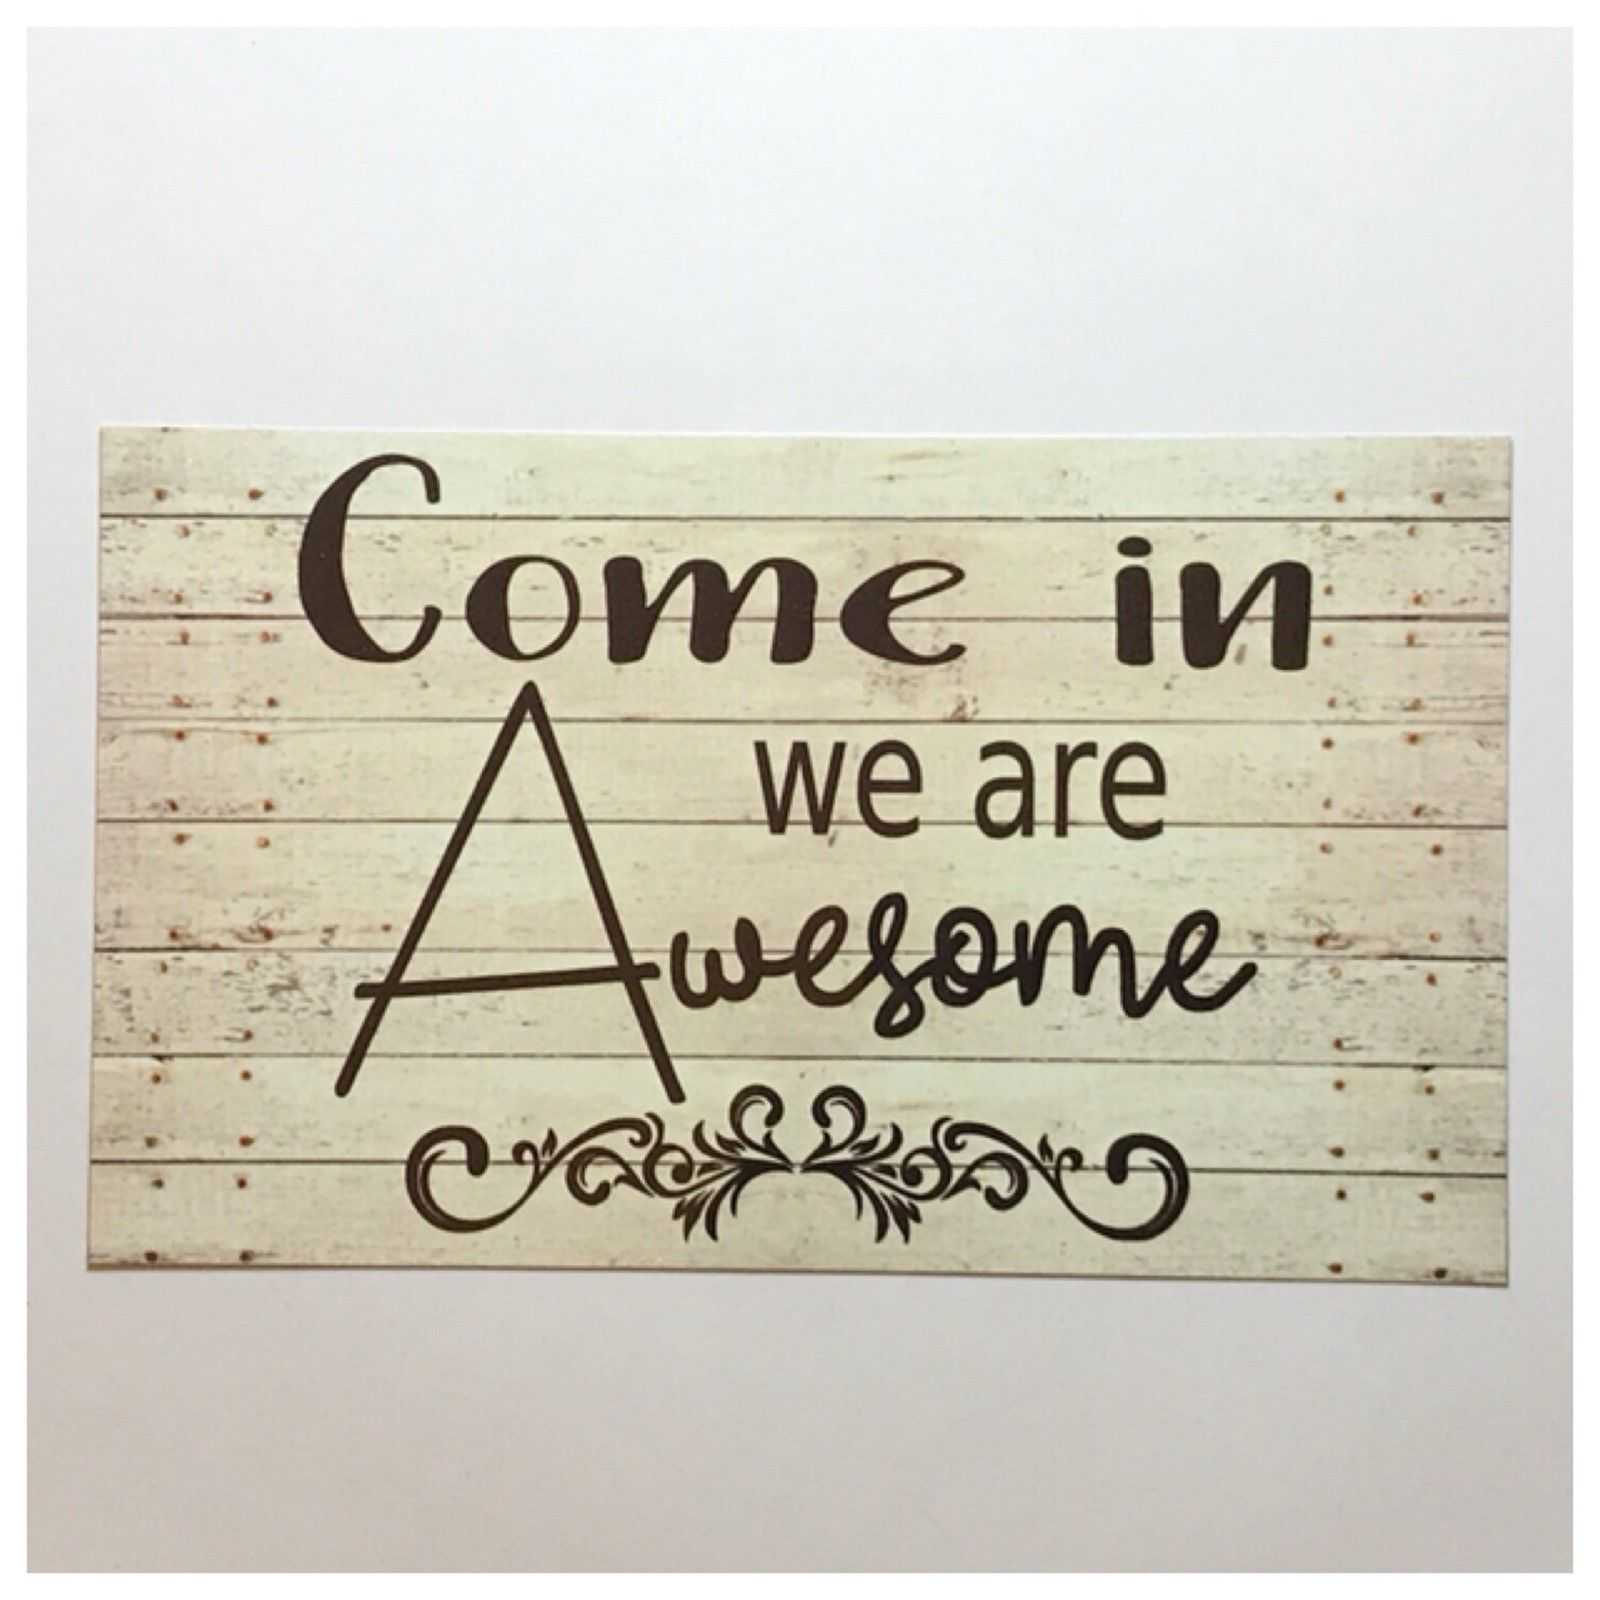 Come In Awesome Sign Tin/Plastic Wall Plaque House Hanging Business Door Shop Plaques & Signs The Renmy Store